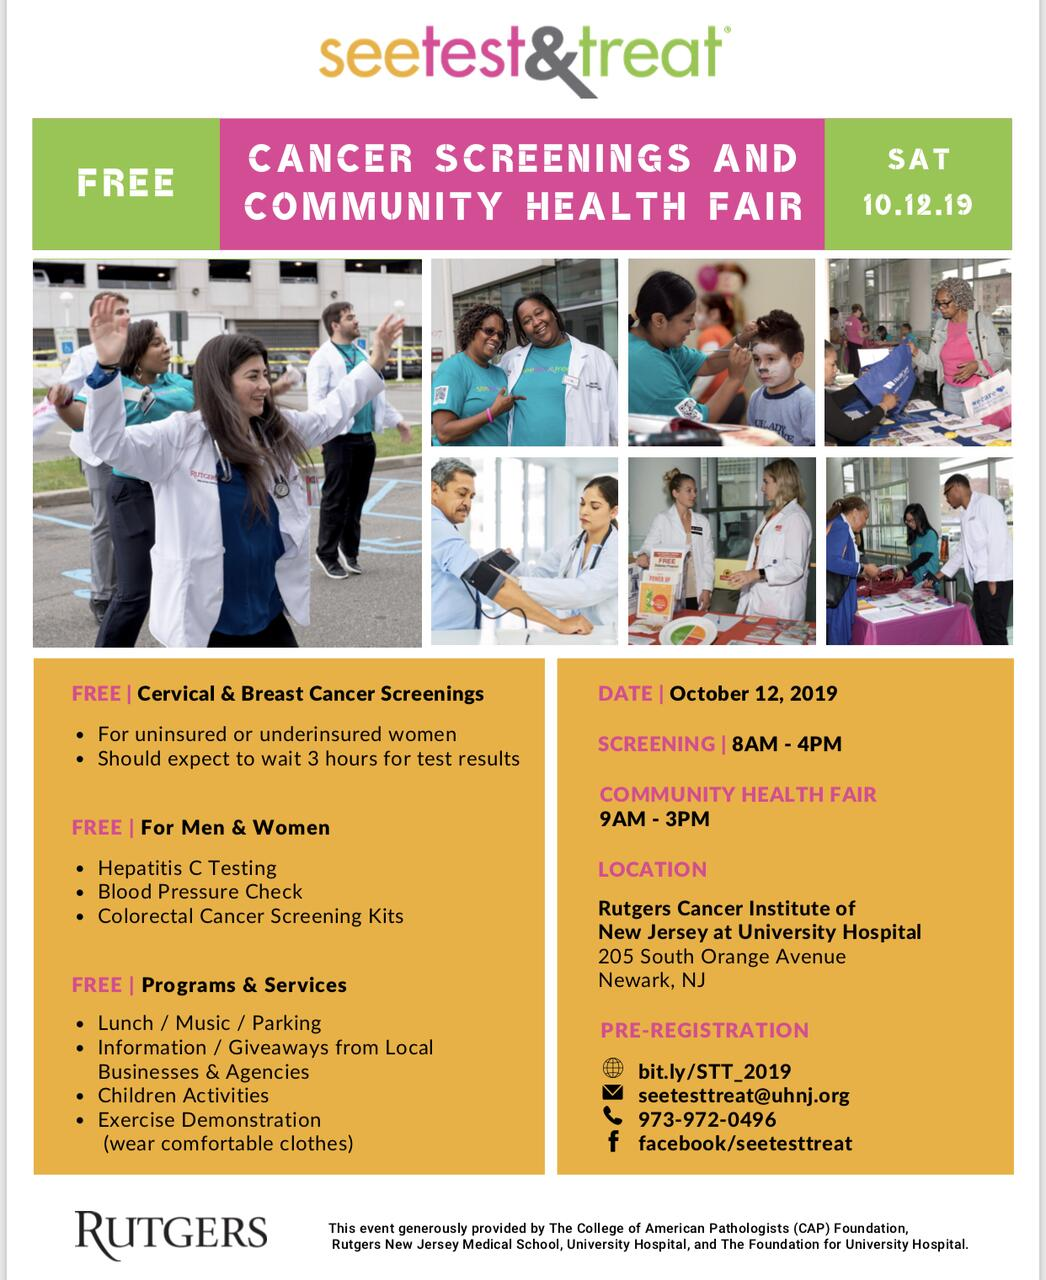 SEE, TEST, TREAT: Rutgers Cancer Institute at University Hospital